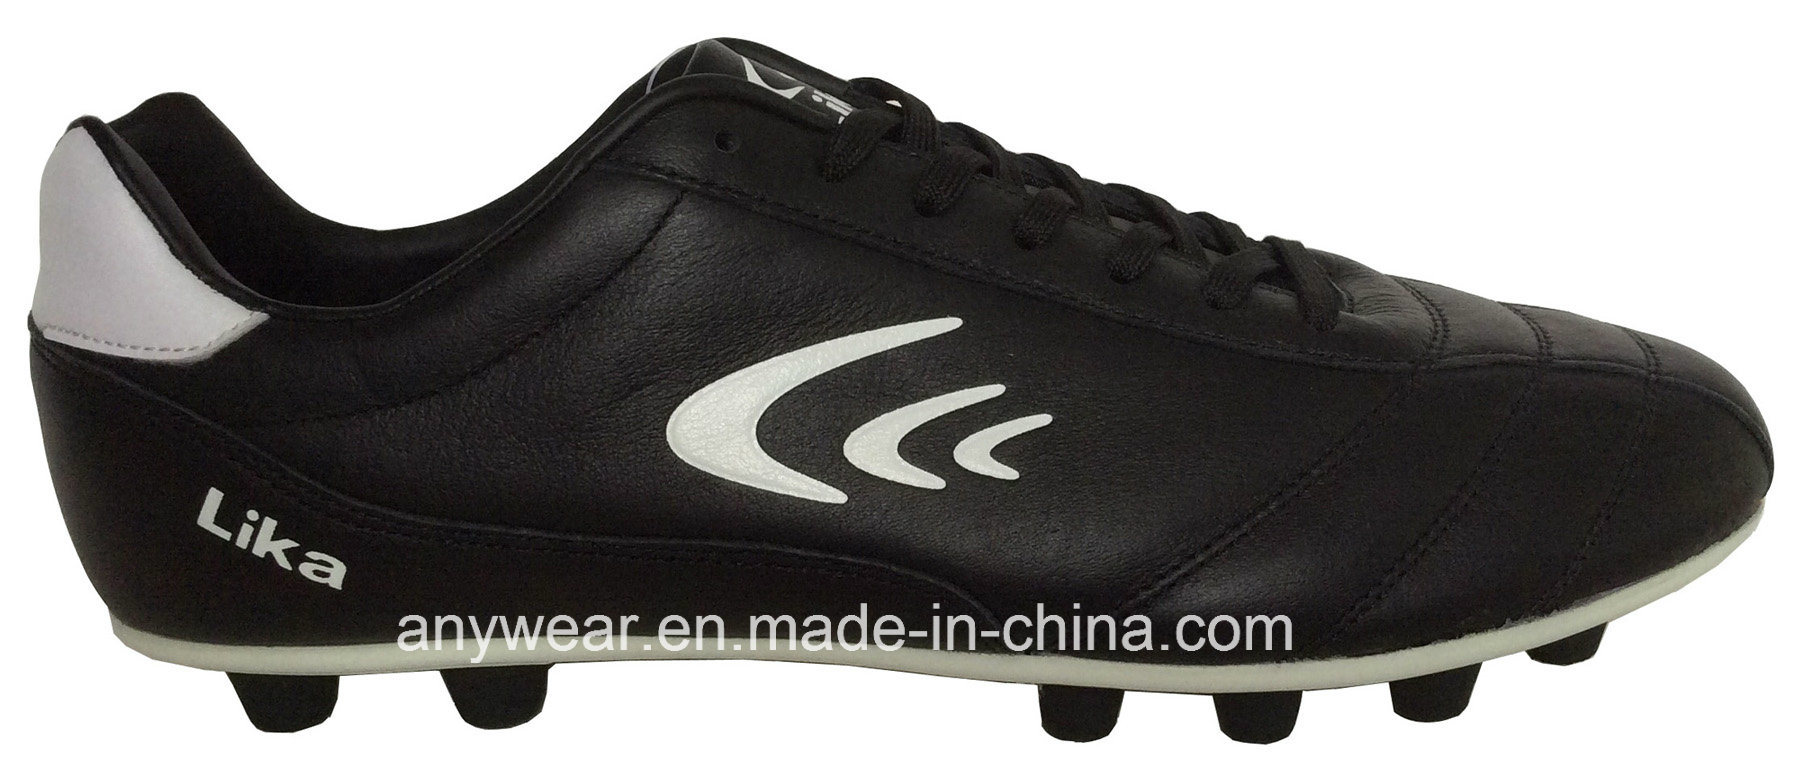 177bfb7c9580c6 China Men′s Soccer Football Boots with Kangaroo Leather Shoes (815-6514) -  China Shoe, Soccer Shoes